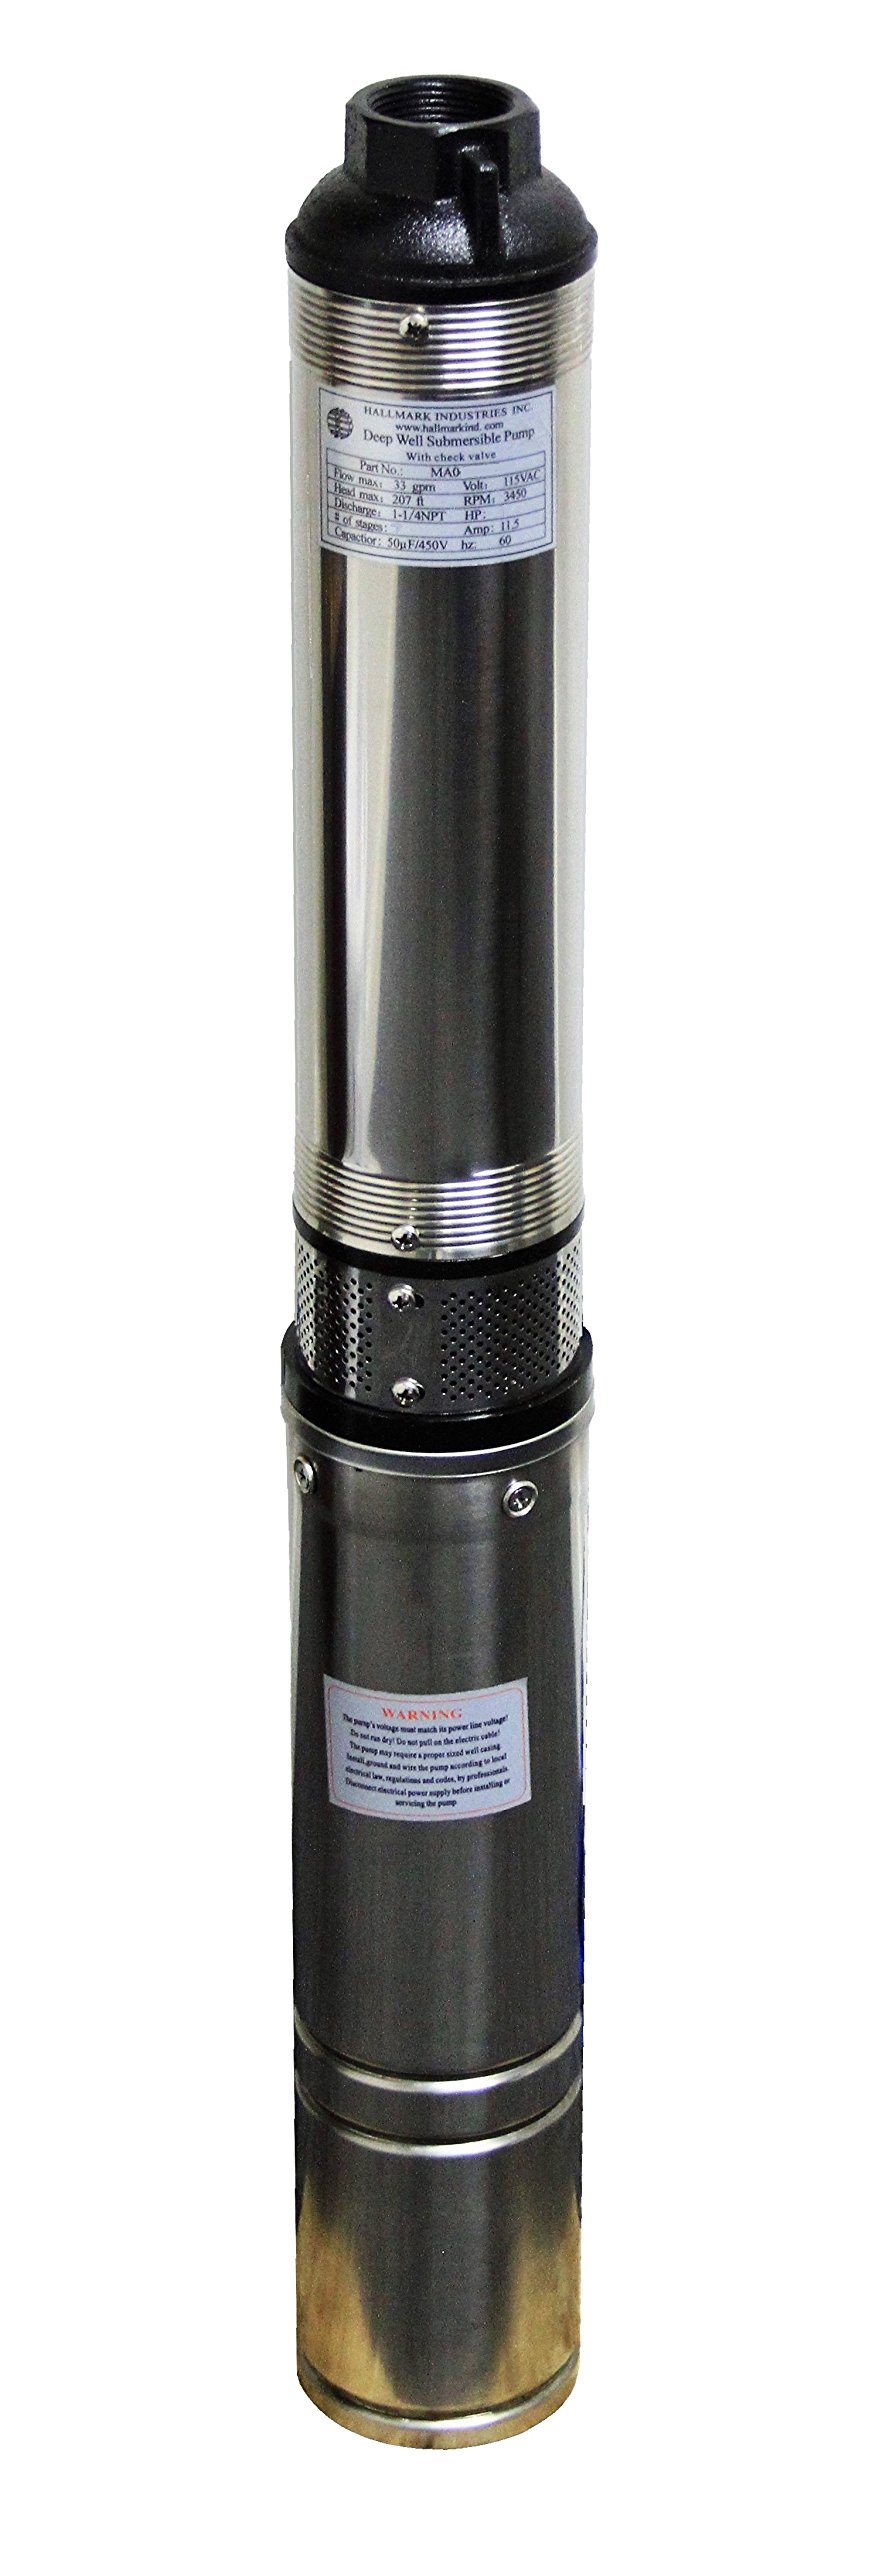 Hallmark Industries MA0343X 4 Submersible Stainless